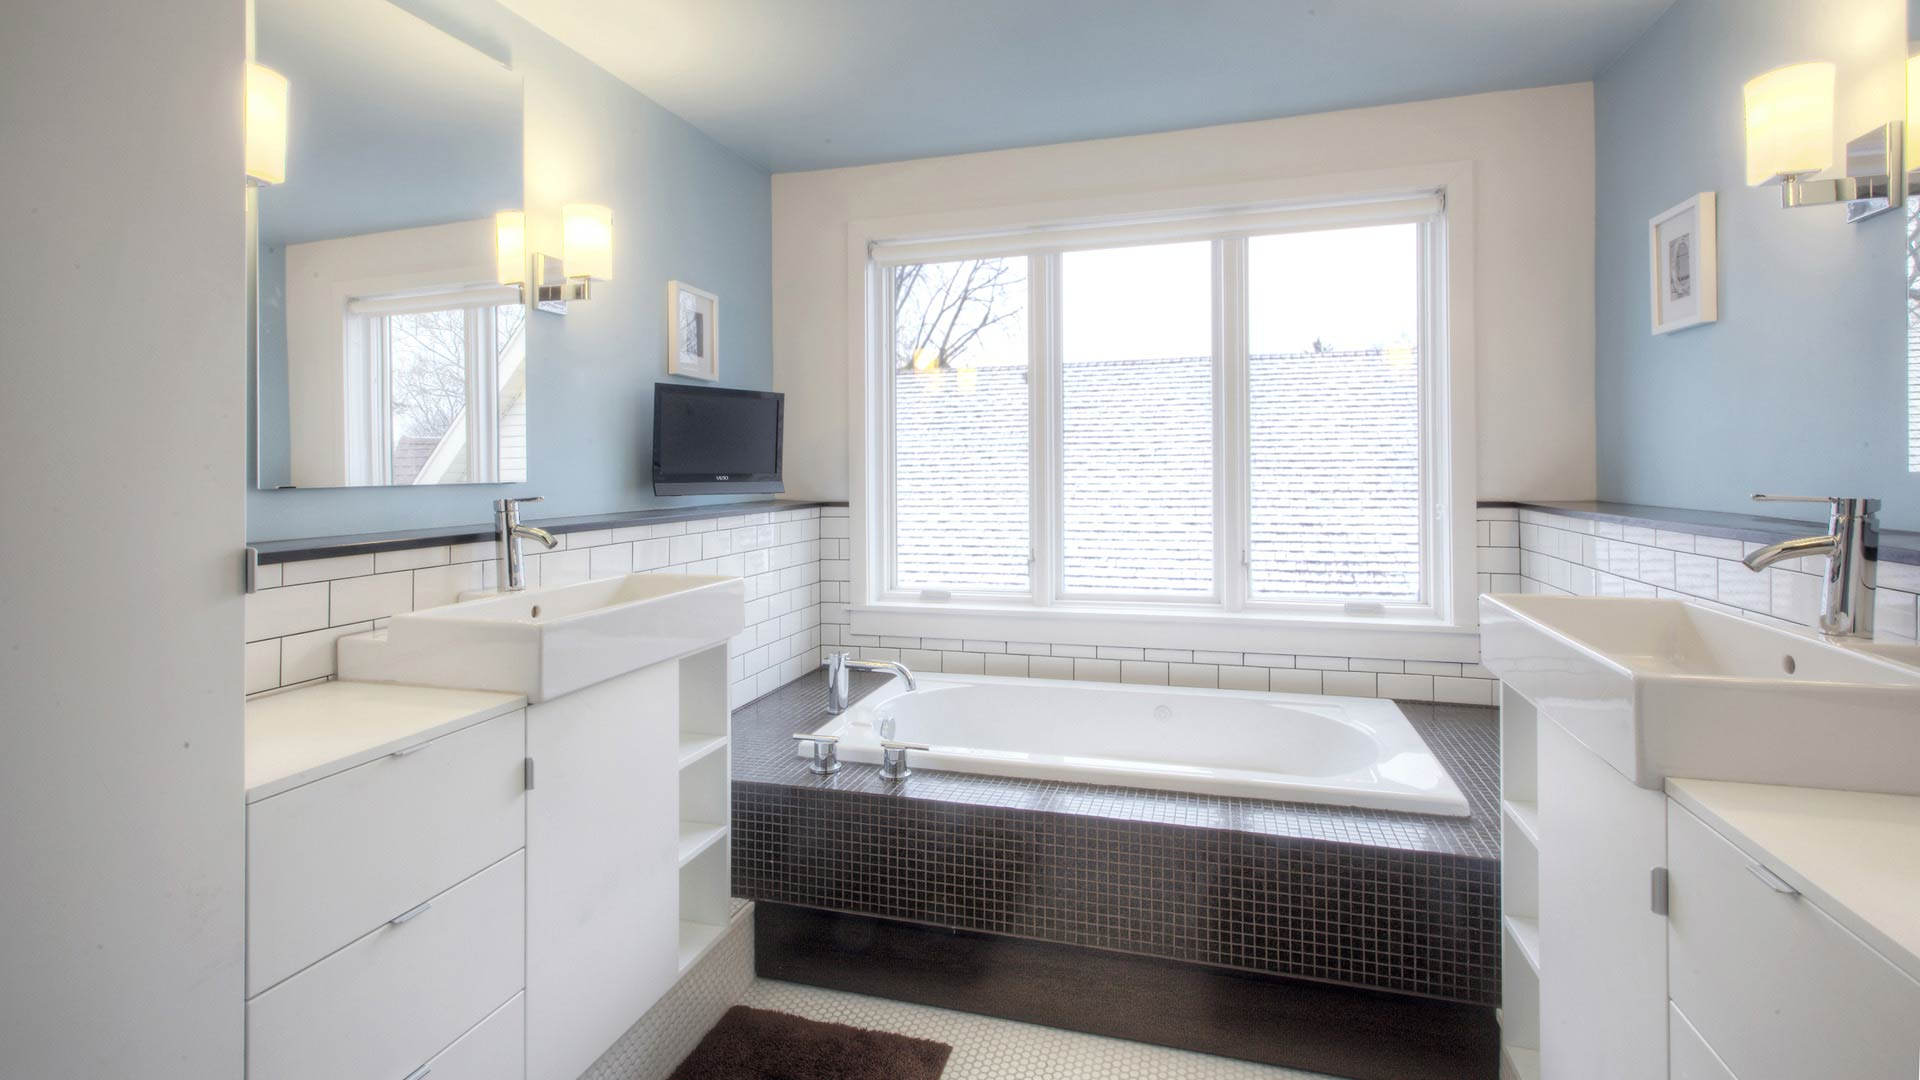 Master Bathroom includes double vanities and platform tub - Classic Irvington Tudor Remodel - Indianapolis, IN